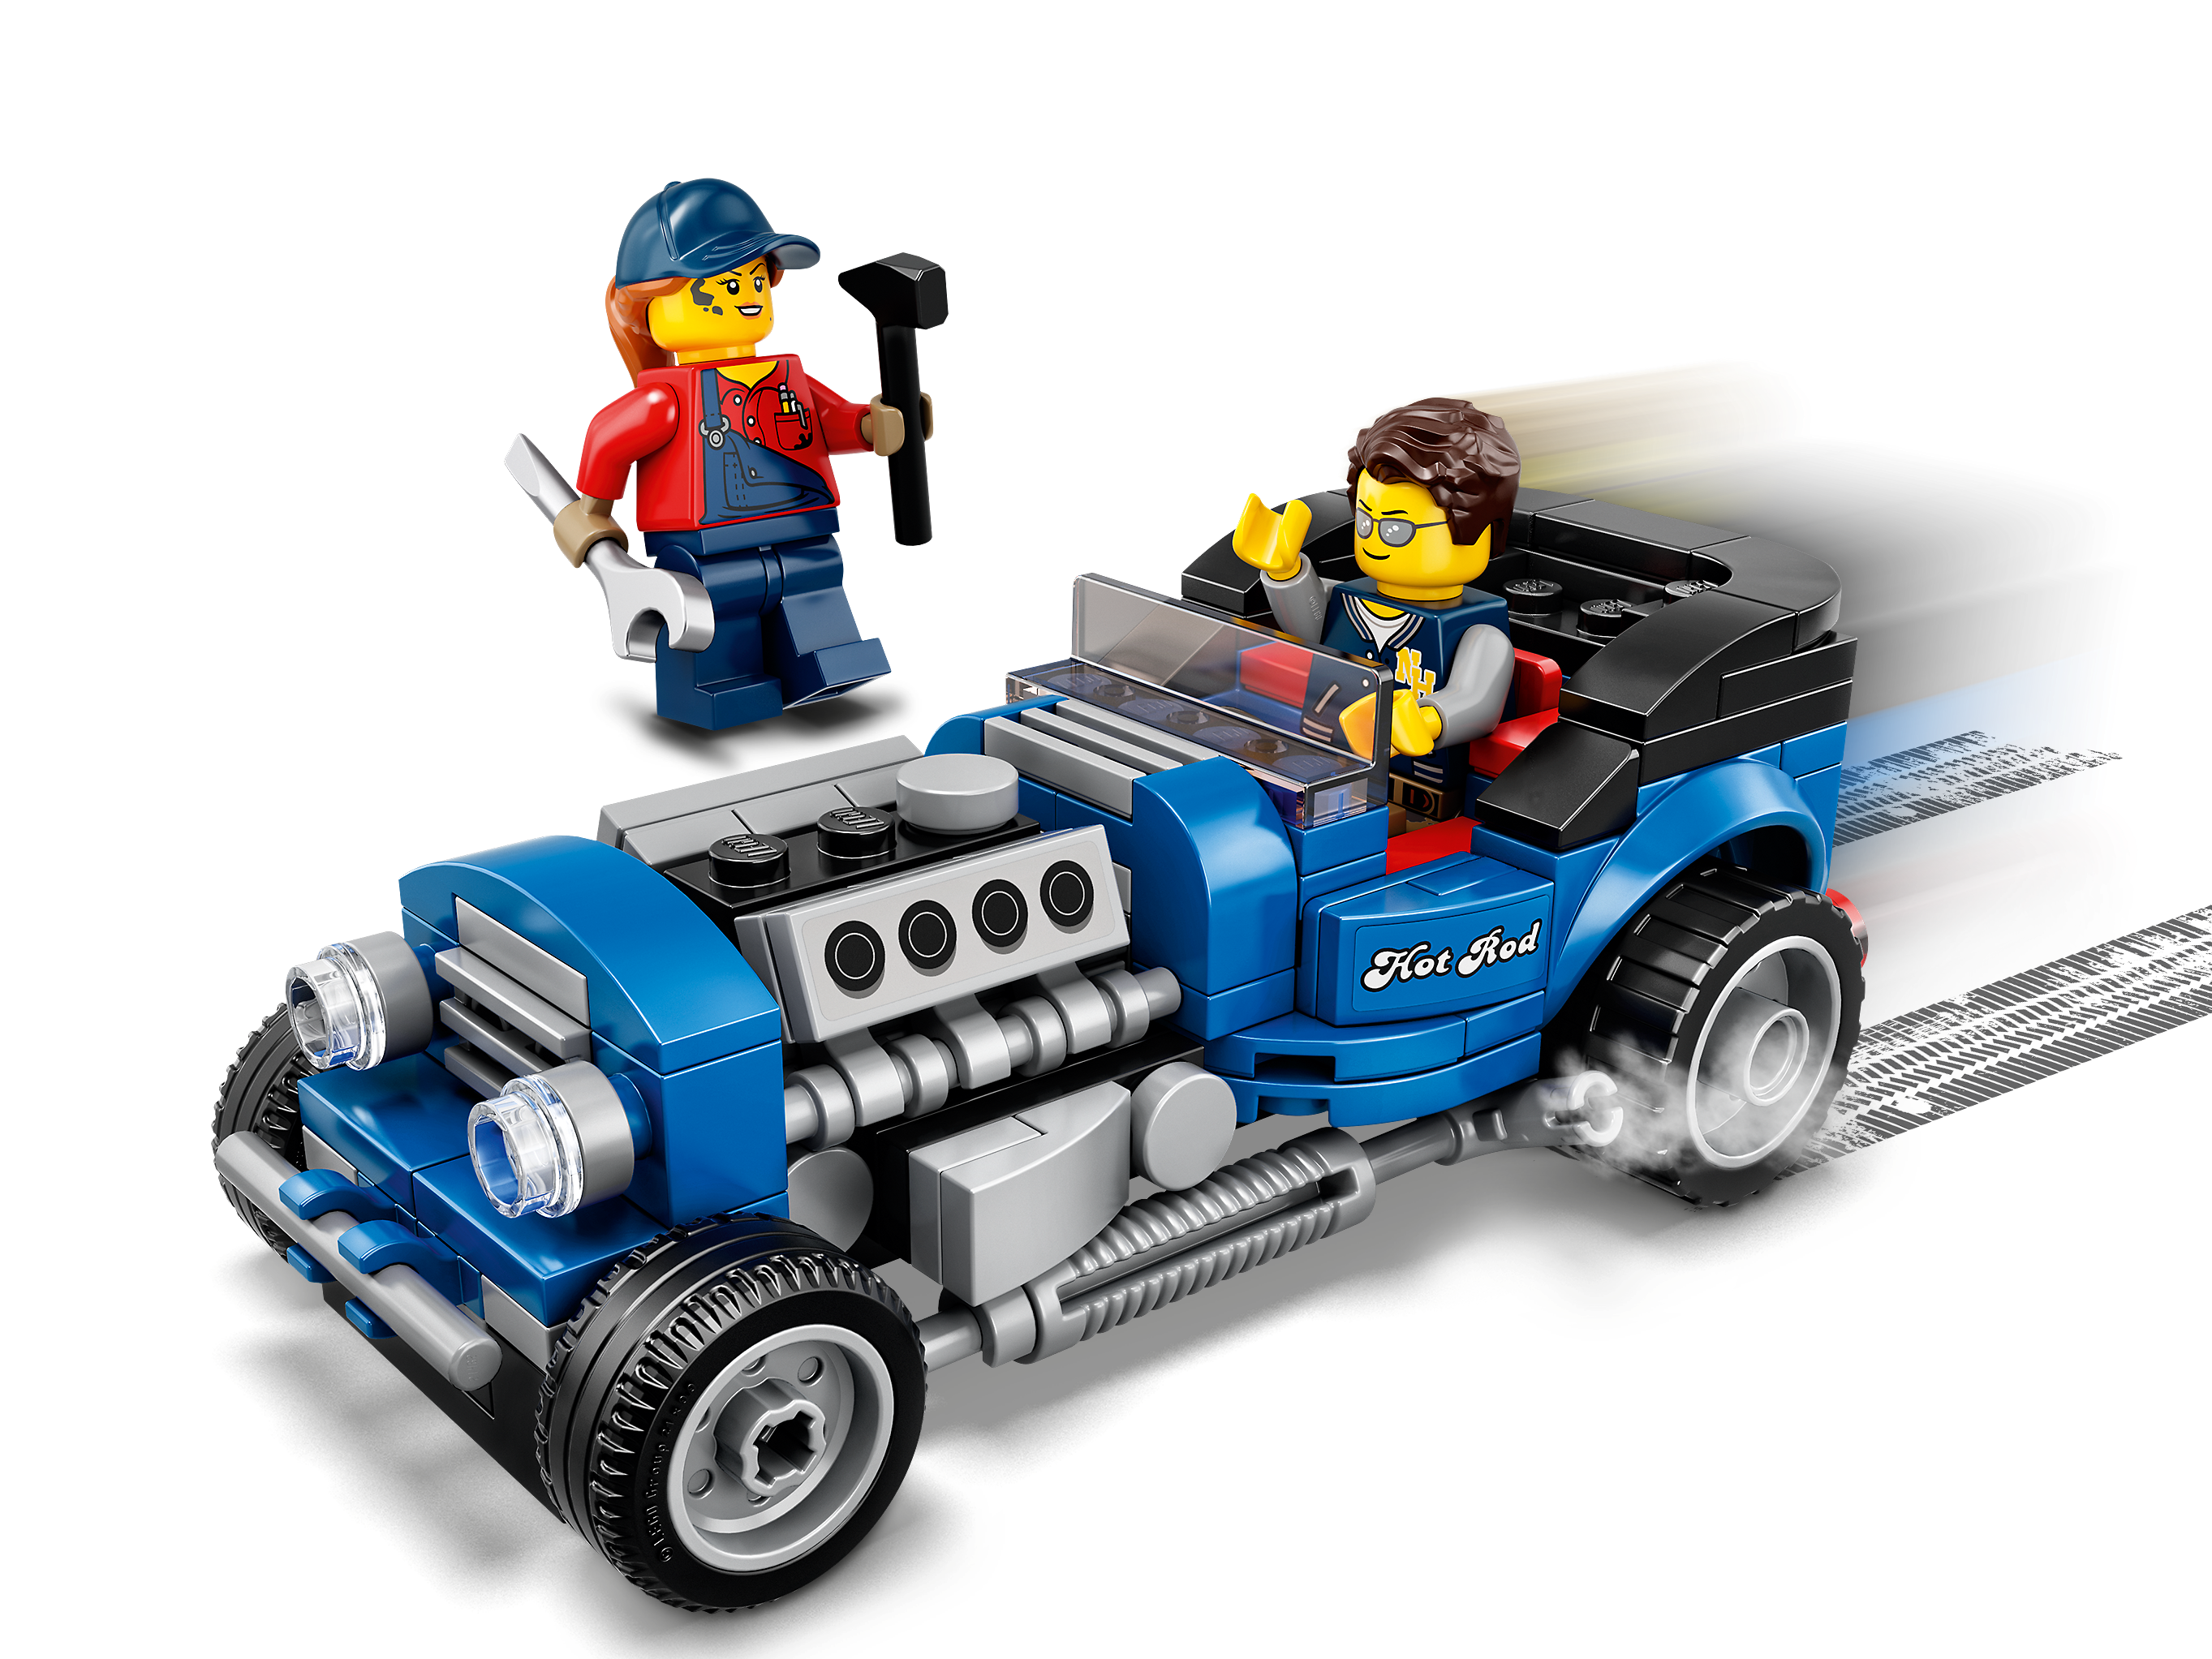 LEGO 40409 Hot Rod Blue blau NEU /& OVP exklusiv